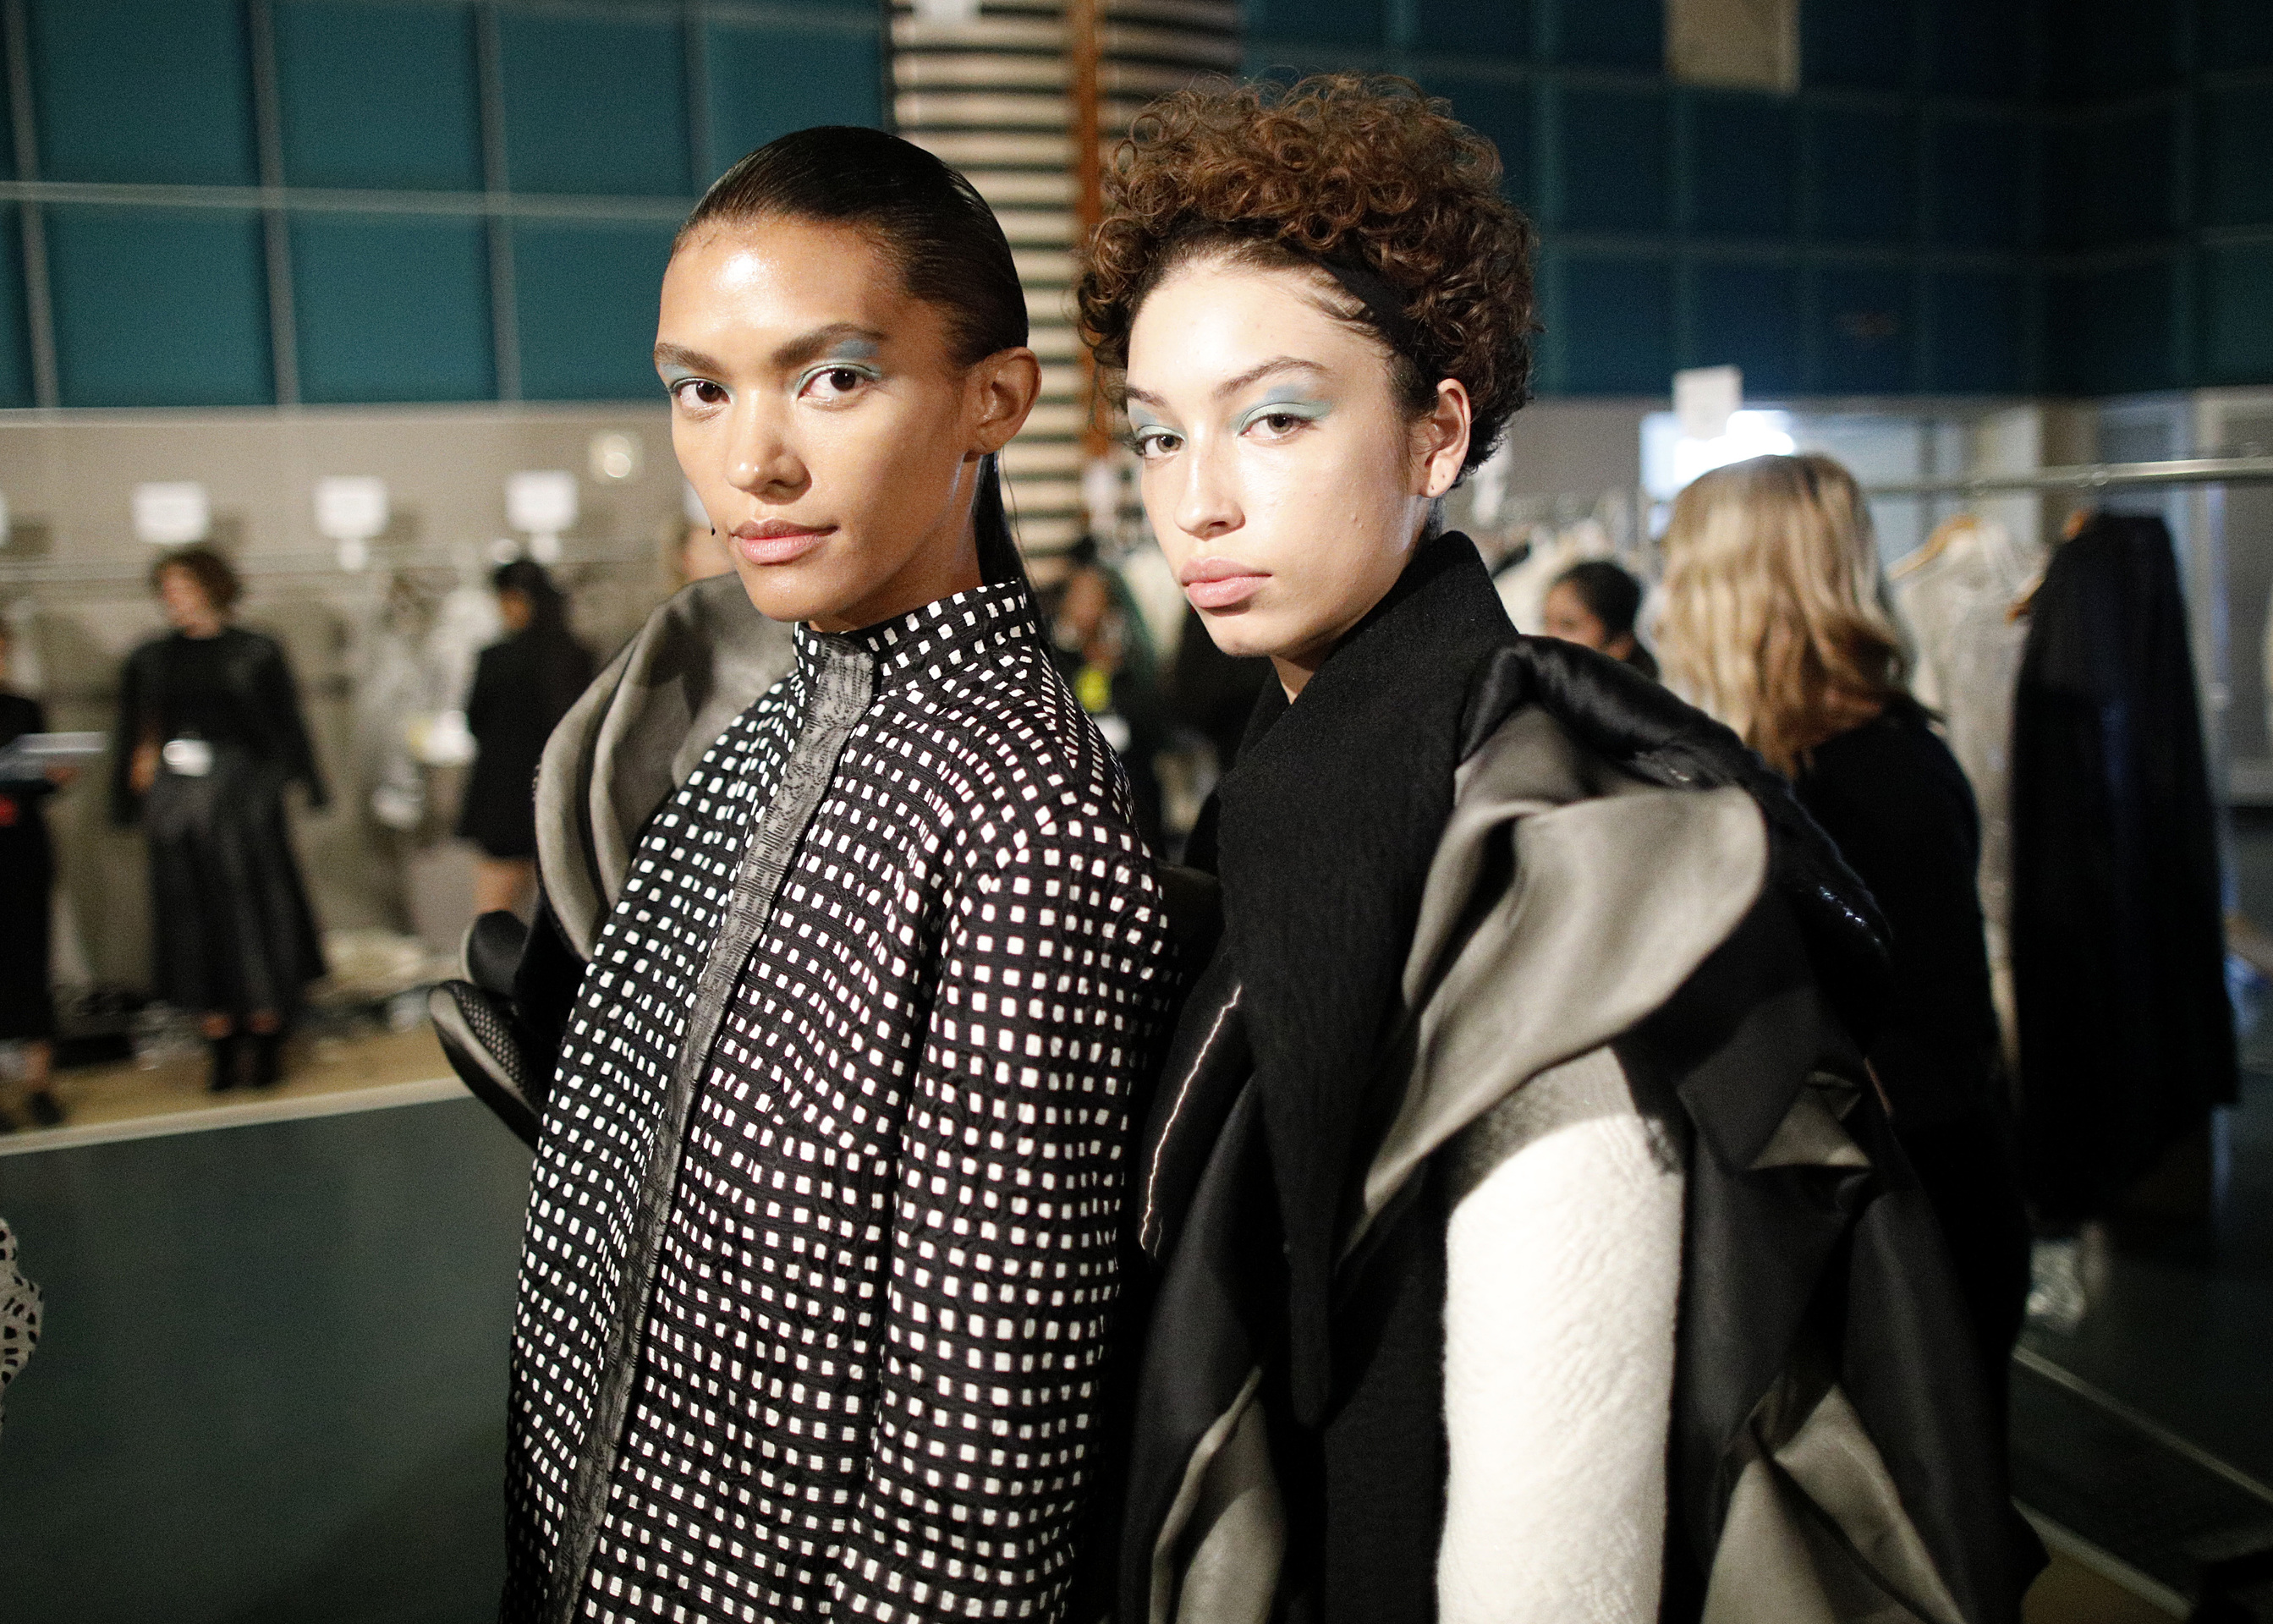 Two models wearing collections by Academy Fashion students gaze at camera